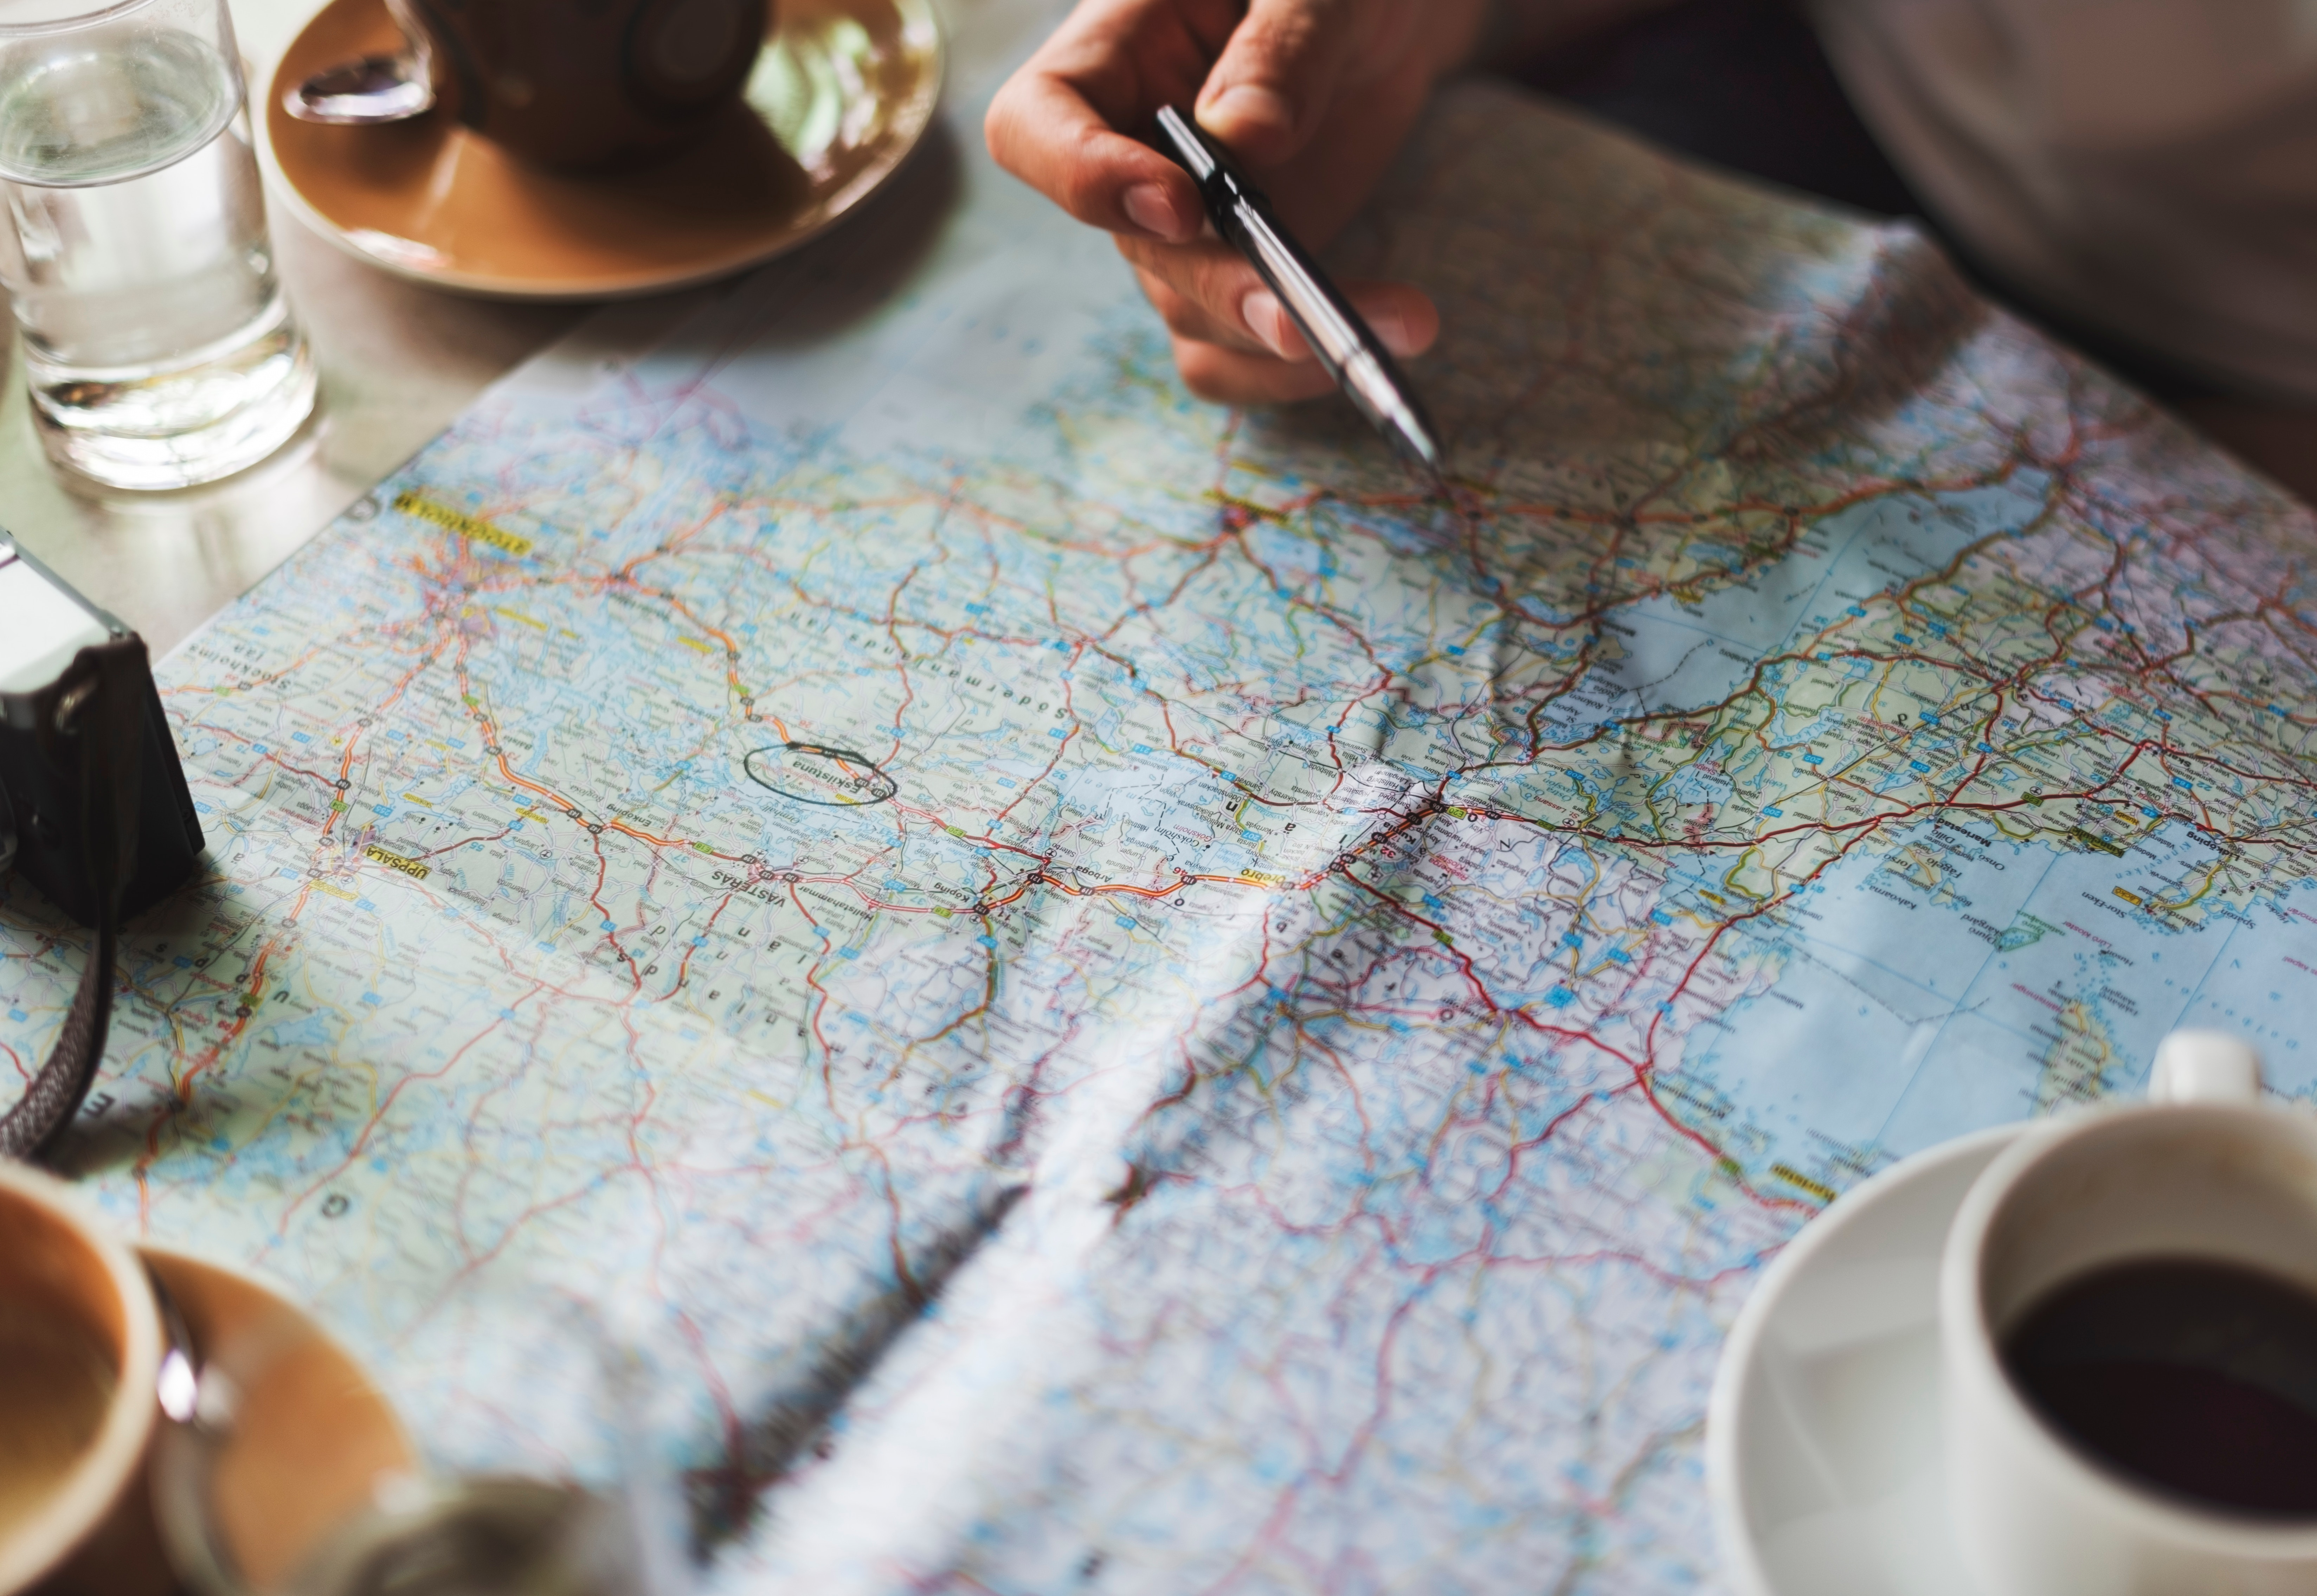 Map, coffee cup, pointing with pen at location, solo travel